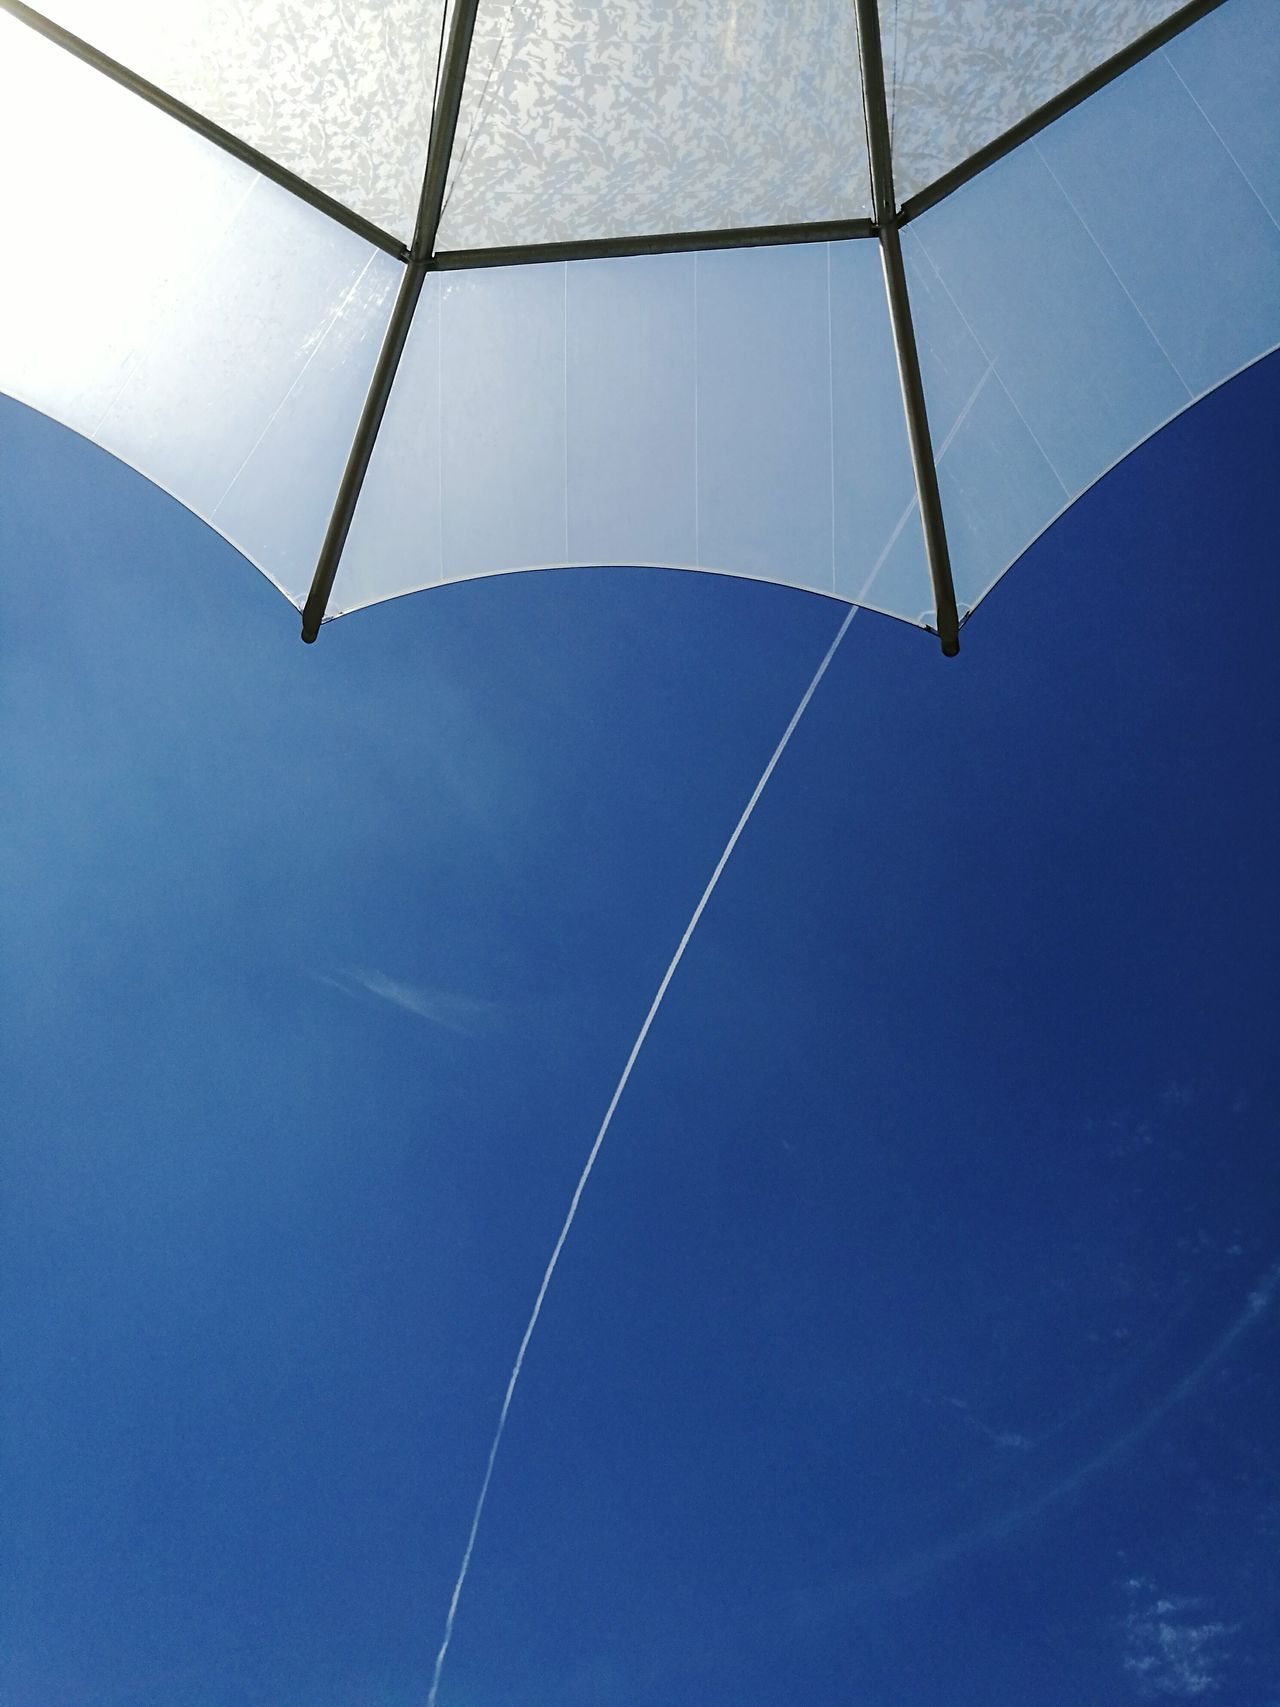 Low Angle View Blue Vapor Trail Sky Outdoors Modern High Up Jetstream Sunny No People Distant View Clear Sunny Day Clear Sky Summer Day HuaweiP9plus Huaweiphotography capturing motion My Year My View